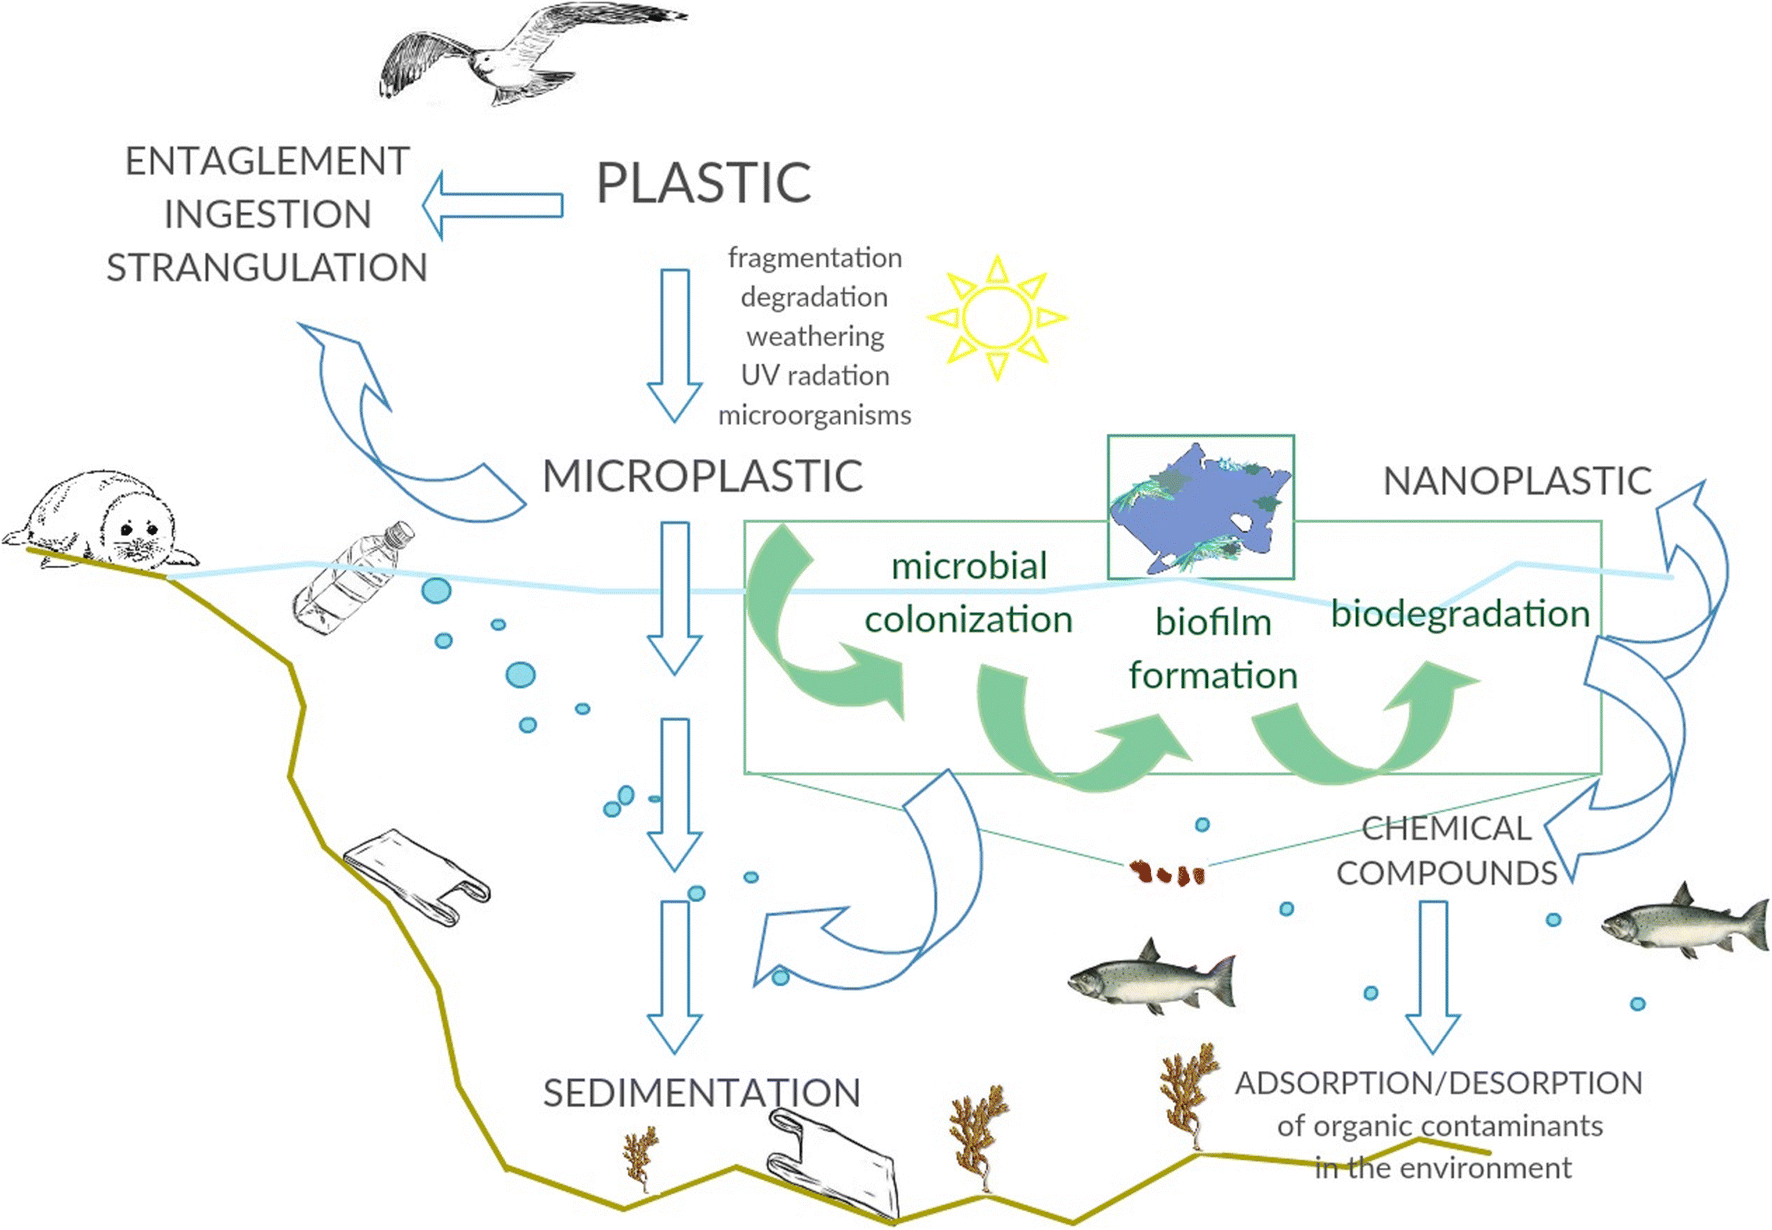 Degradation of plastics and plastic-degrading bacteria in cold